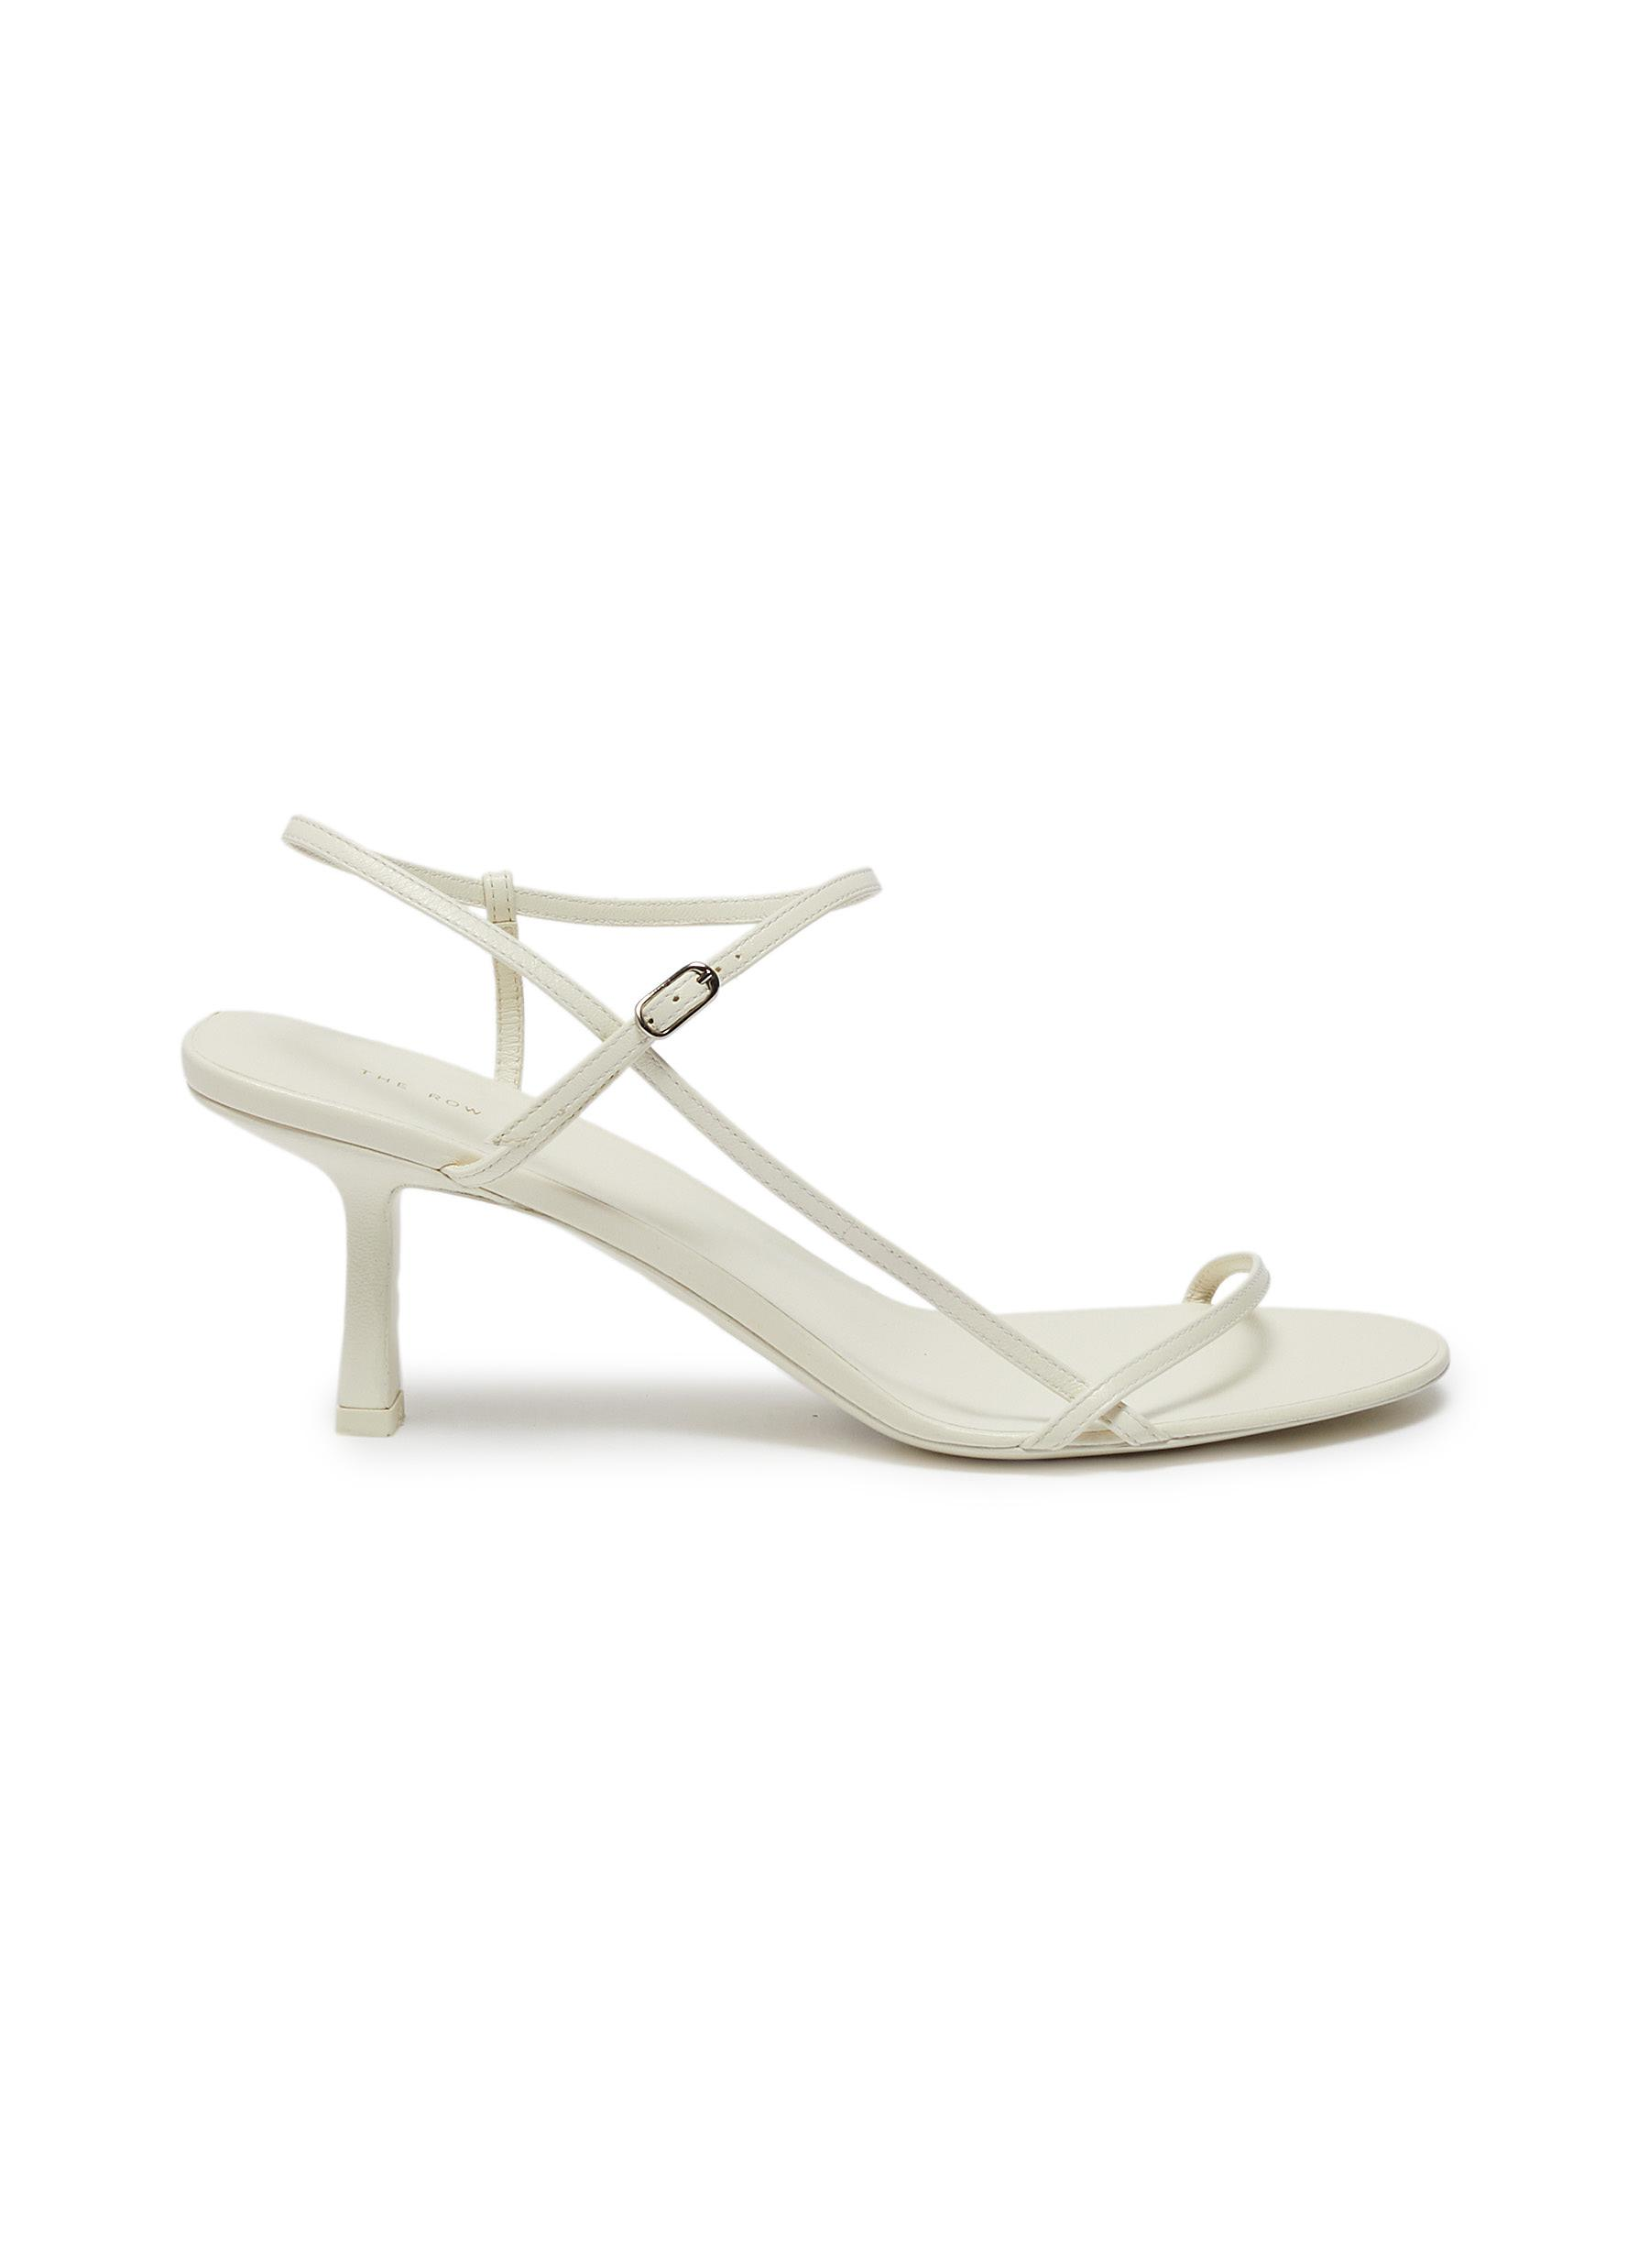 Bare 65 strappy leather sandals by The Row